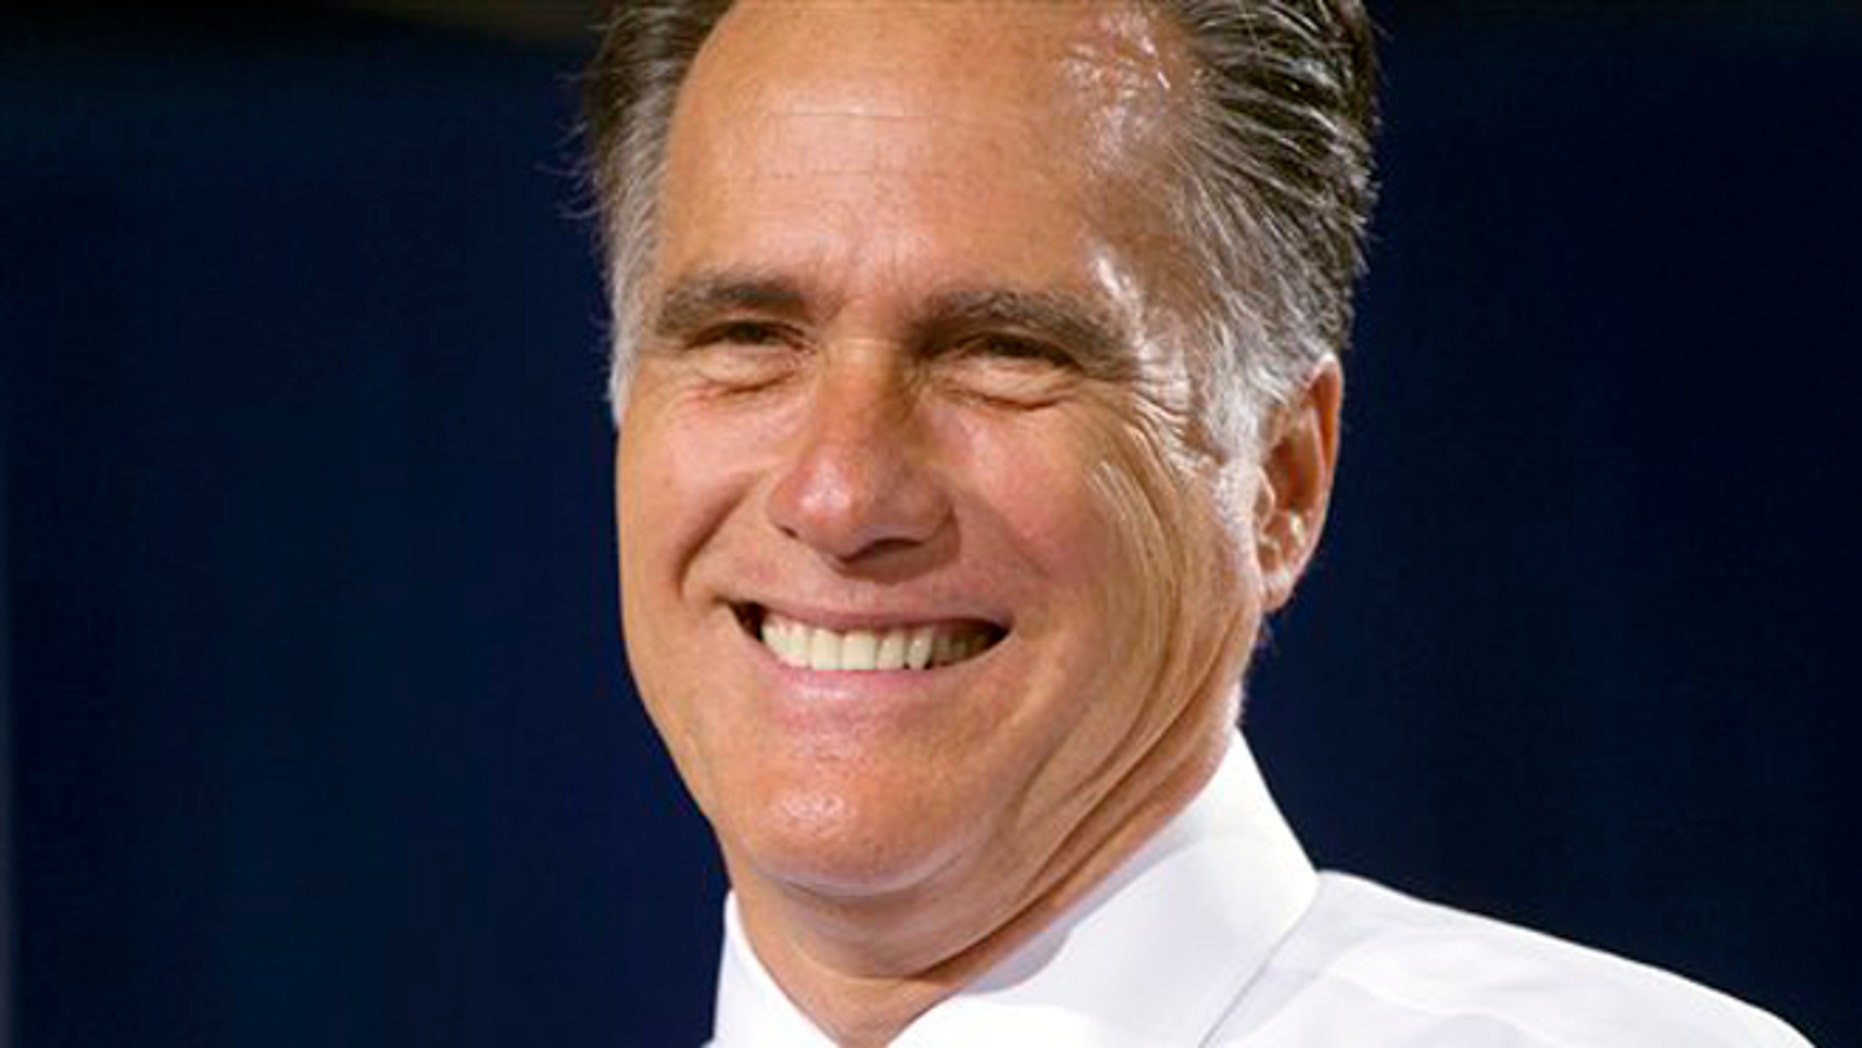 Republican presidential candidate, former Massachusetts Gov. Mitt Romney smiles during a campaign stop on Wednesday, July 18, 2012 in Bowling Green, Ohio.  (AP Photo/Evan Vucci)